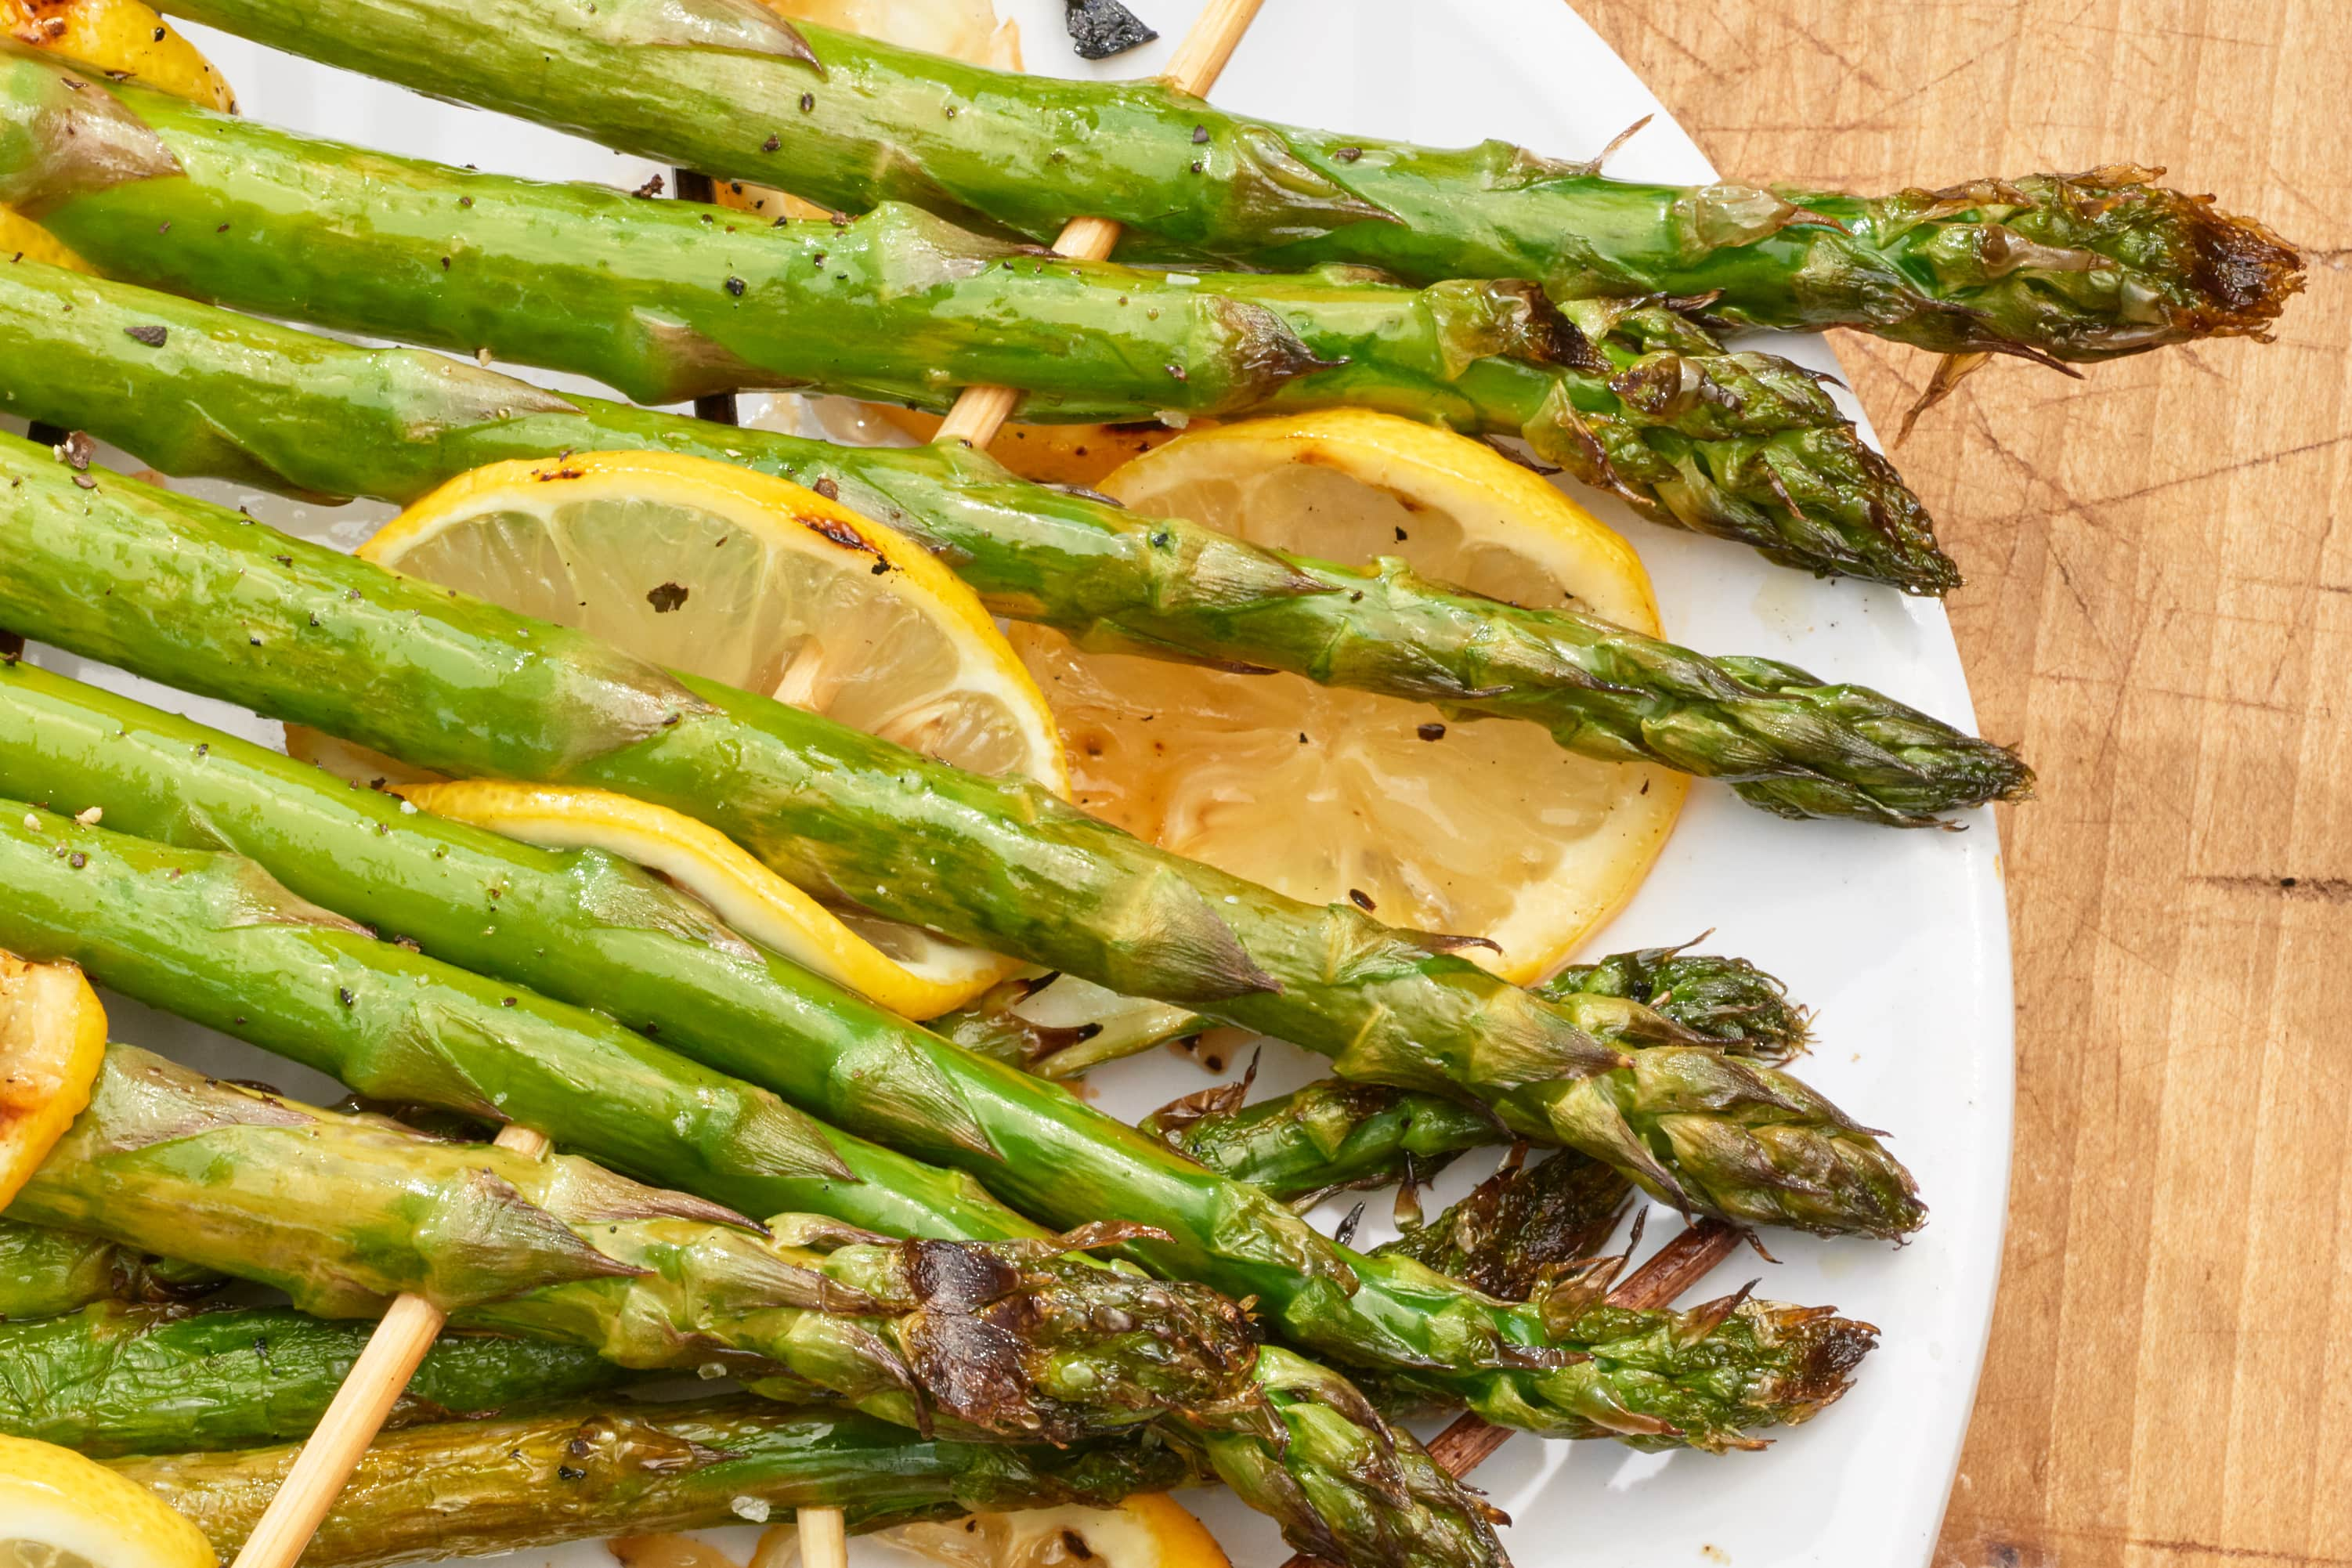 How To Grill Even Better Asparagus